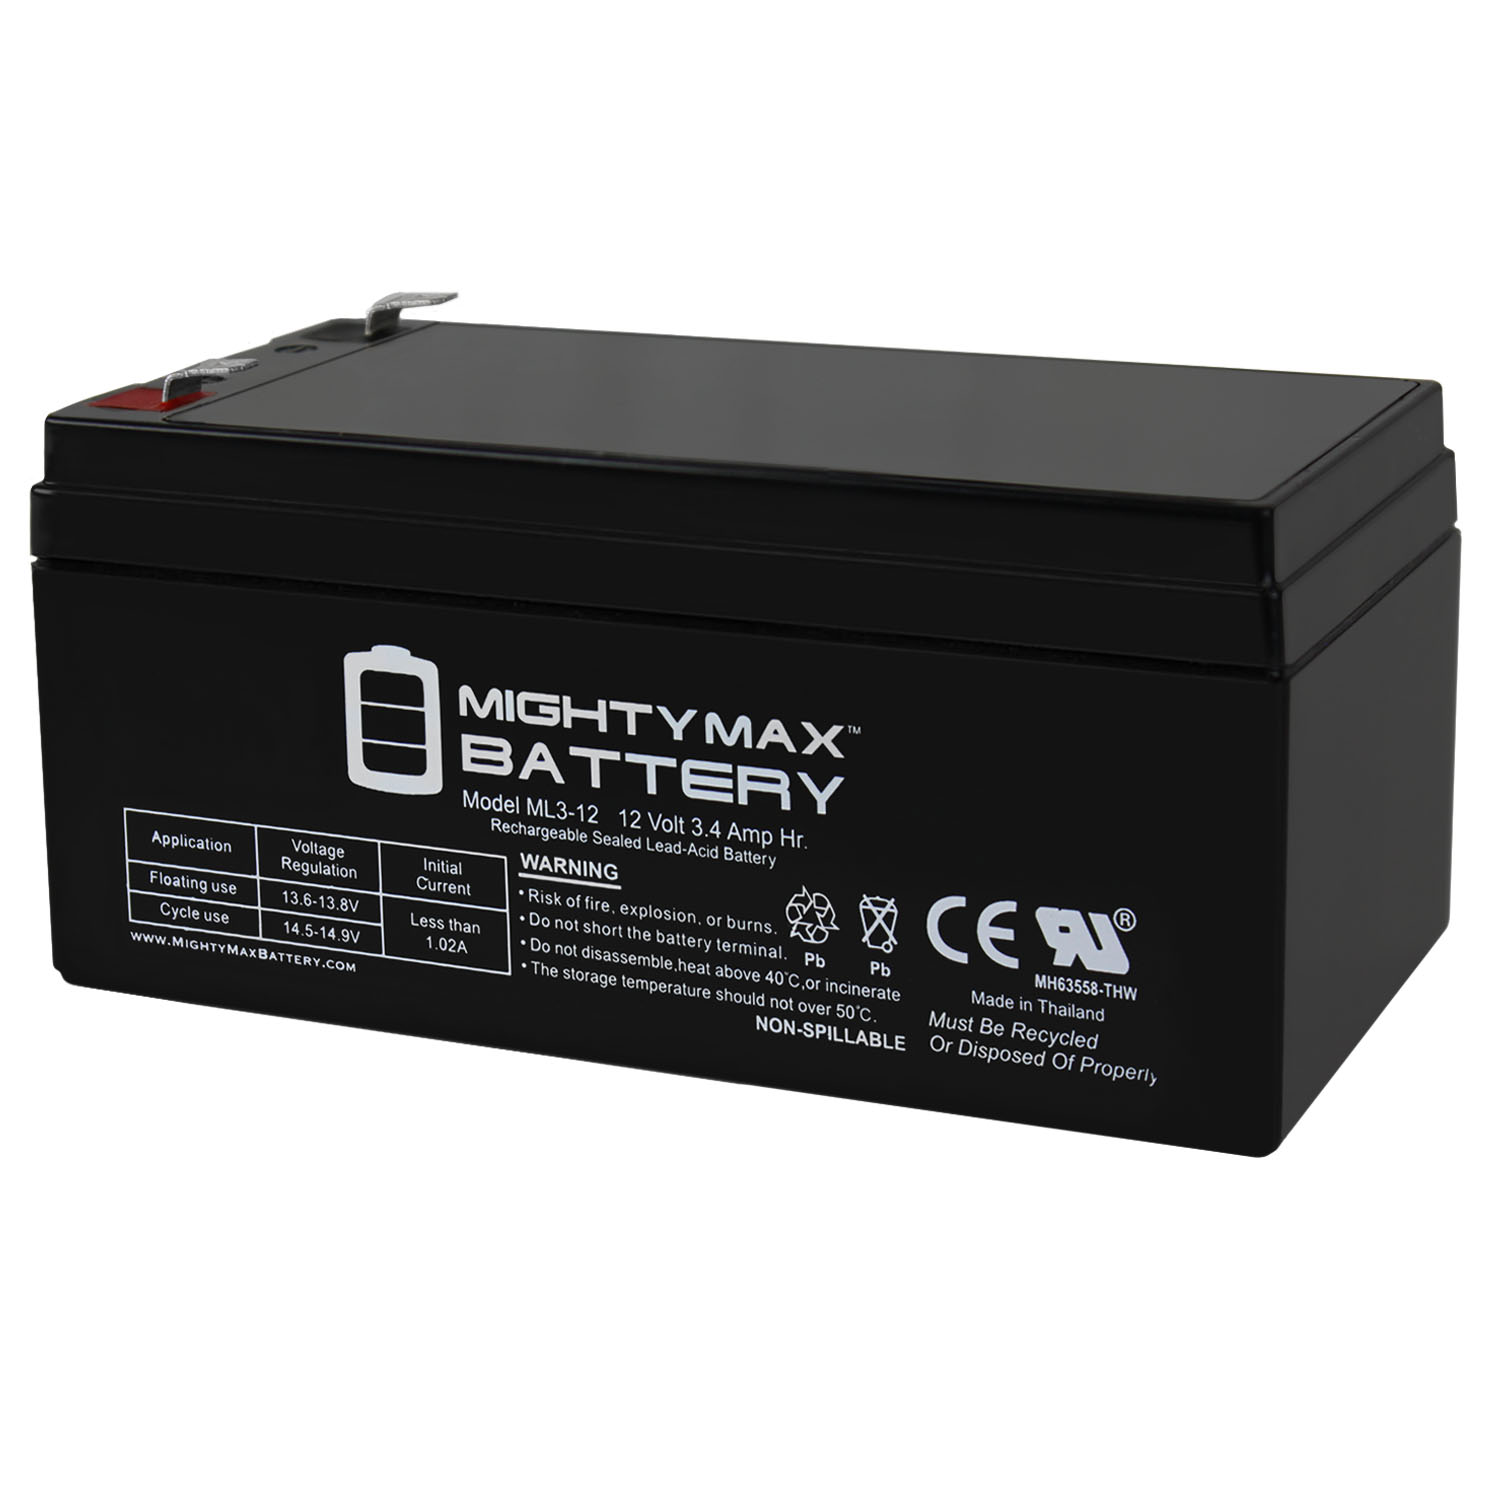 Mighty Max Battery ML3-12 Replacement part For Toro Lawn mower # 106-8397 BATTERY-12 VOLT at Sears.com